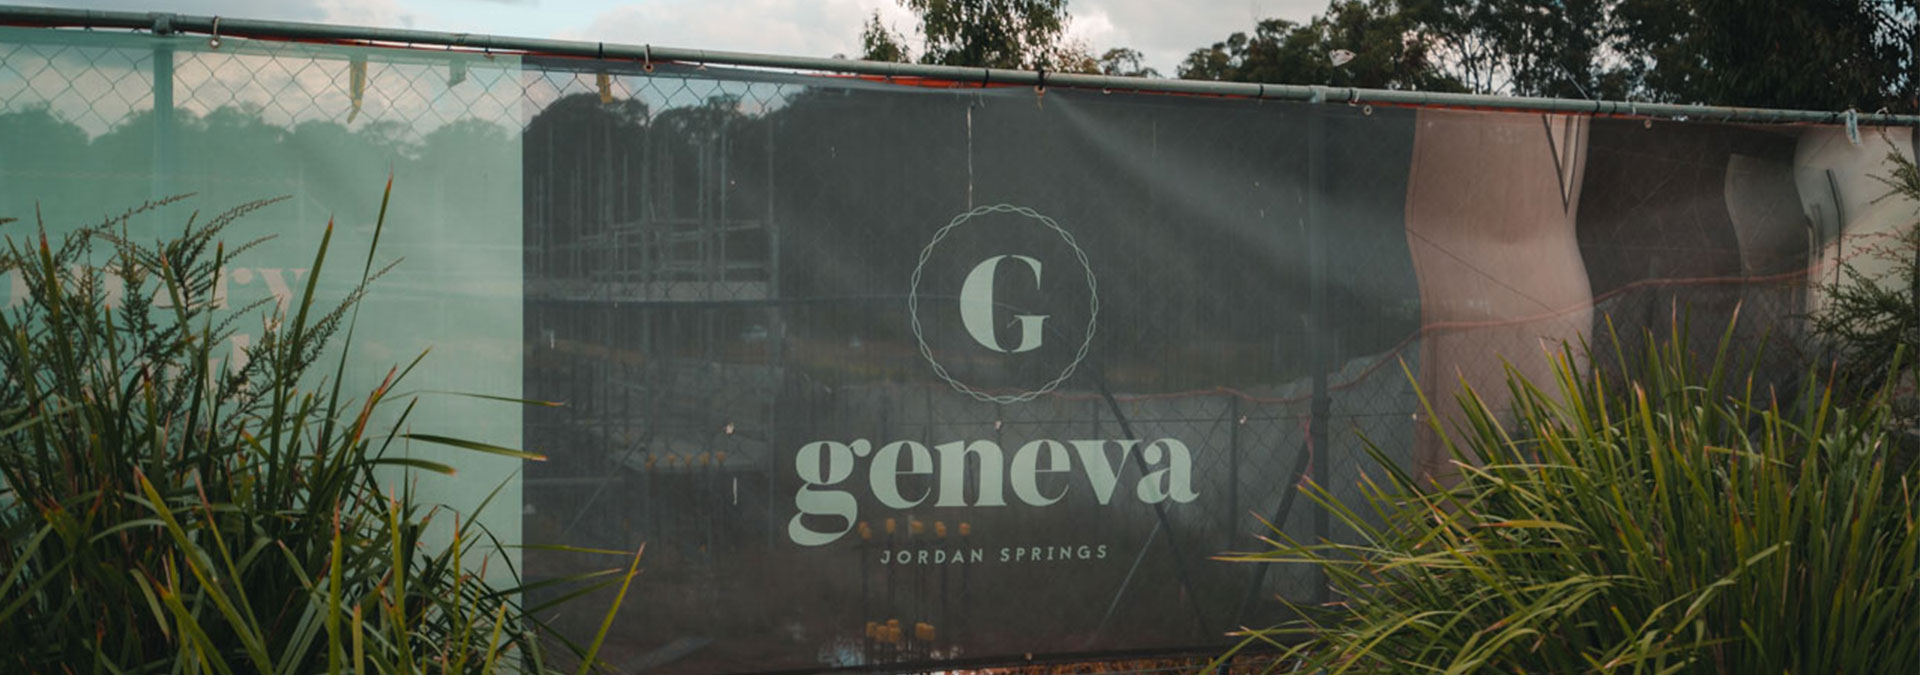 Branded Fence Fabric for Sydney Builders